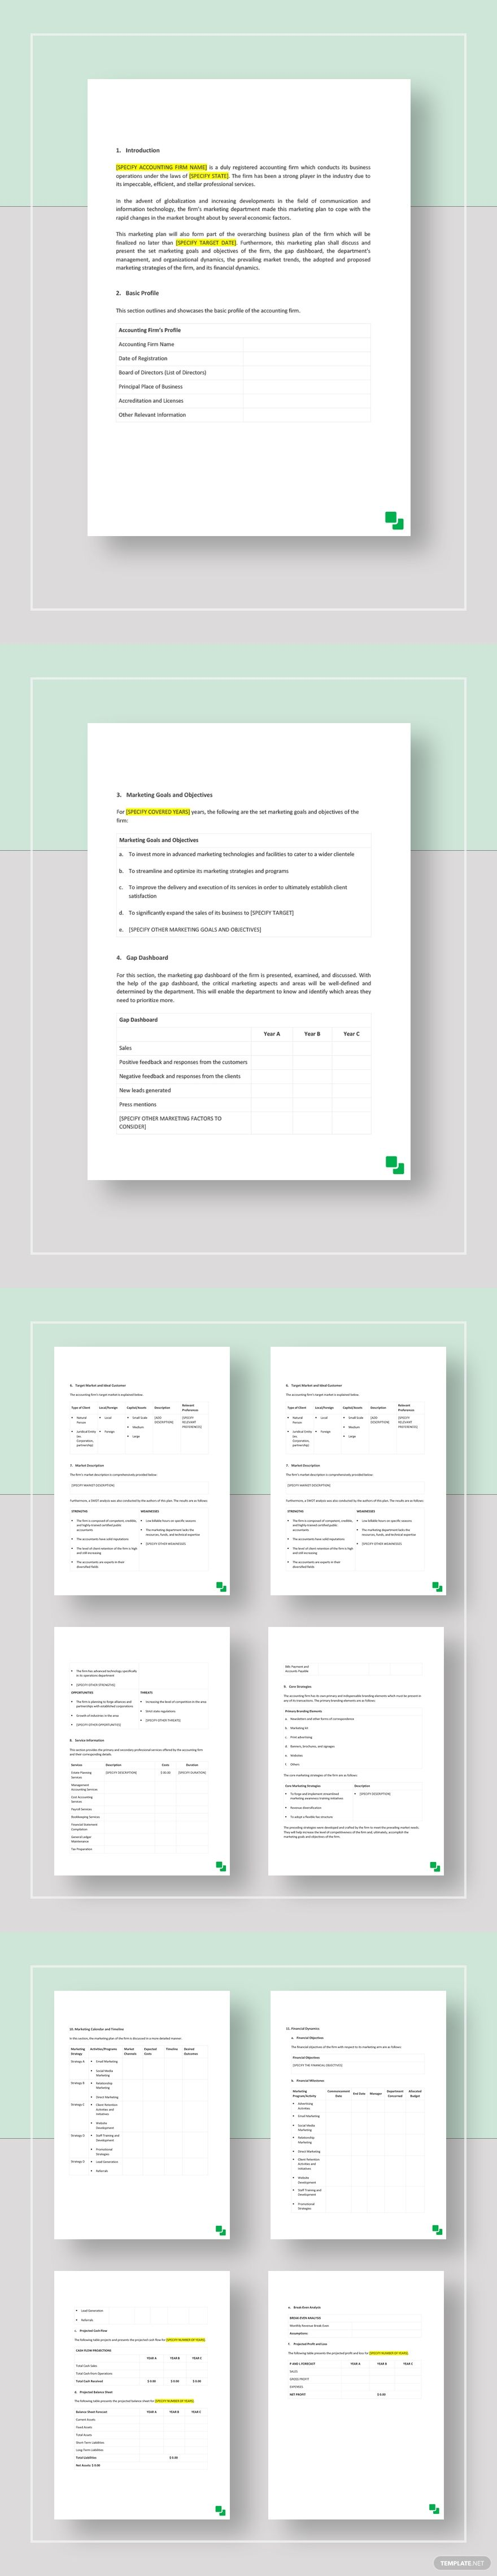 Accounting Firm Marketing Plan Template AD, , SPONSORED